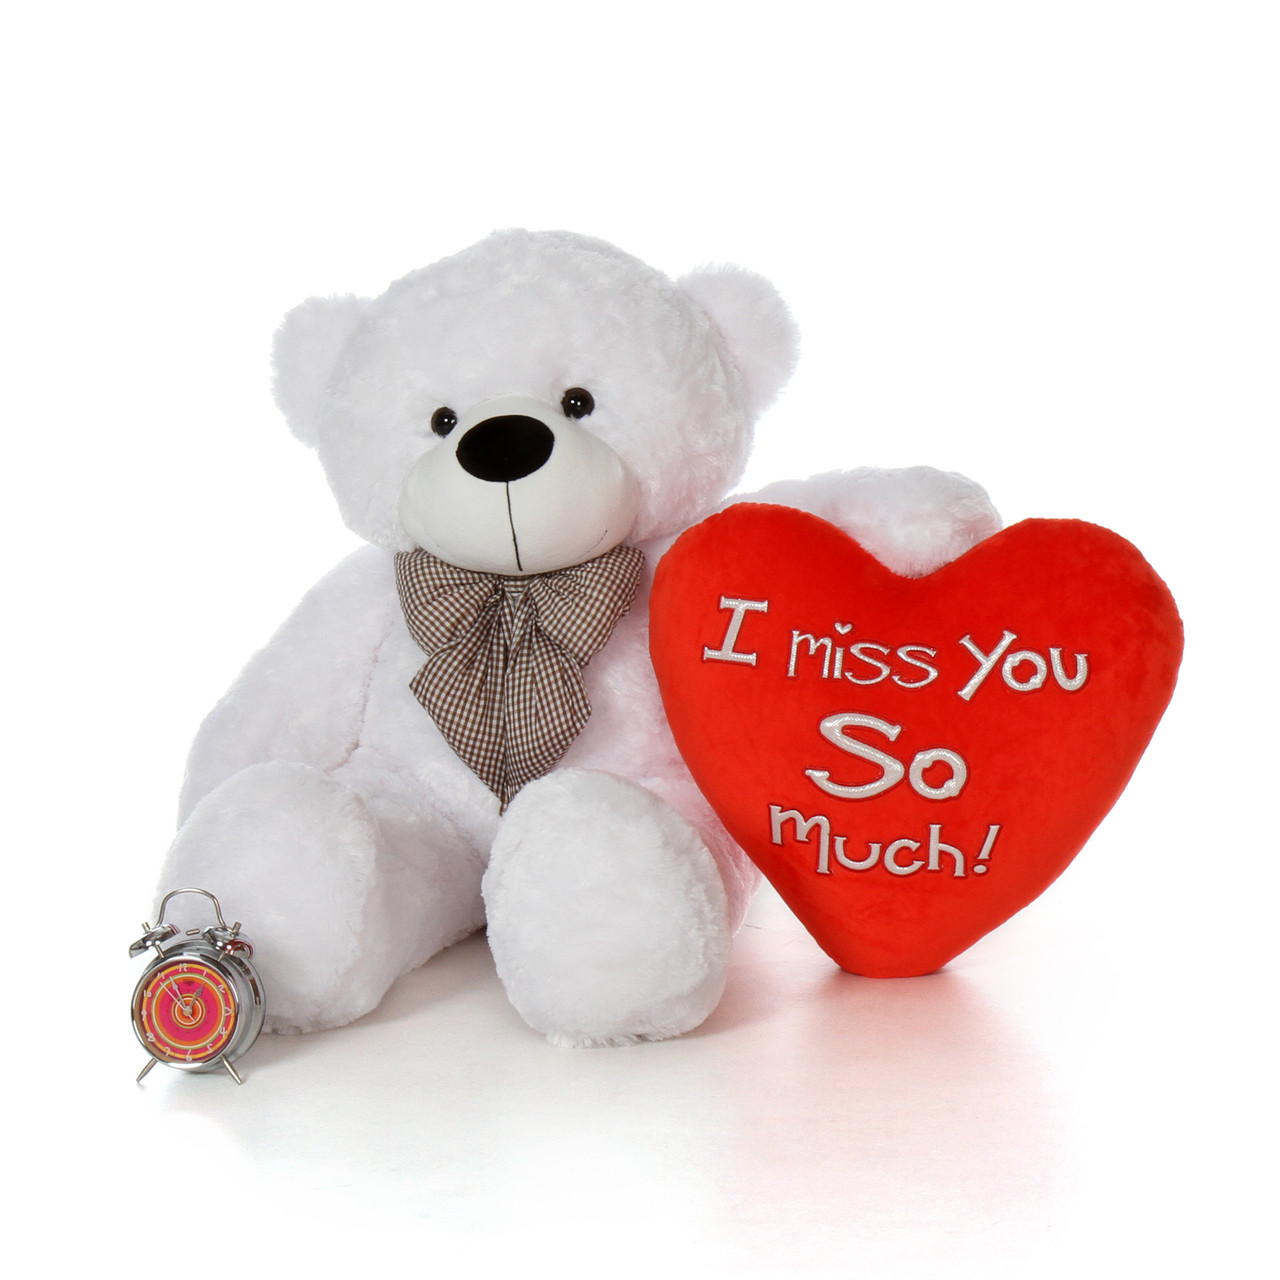 48in big life size valentines day teddy bear white coco cuddles with beautiful i miss you so much red heart pillow - Giant Teddy Bear For Valentines Day